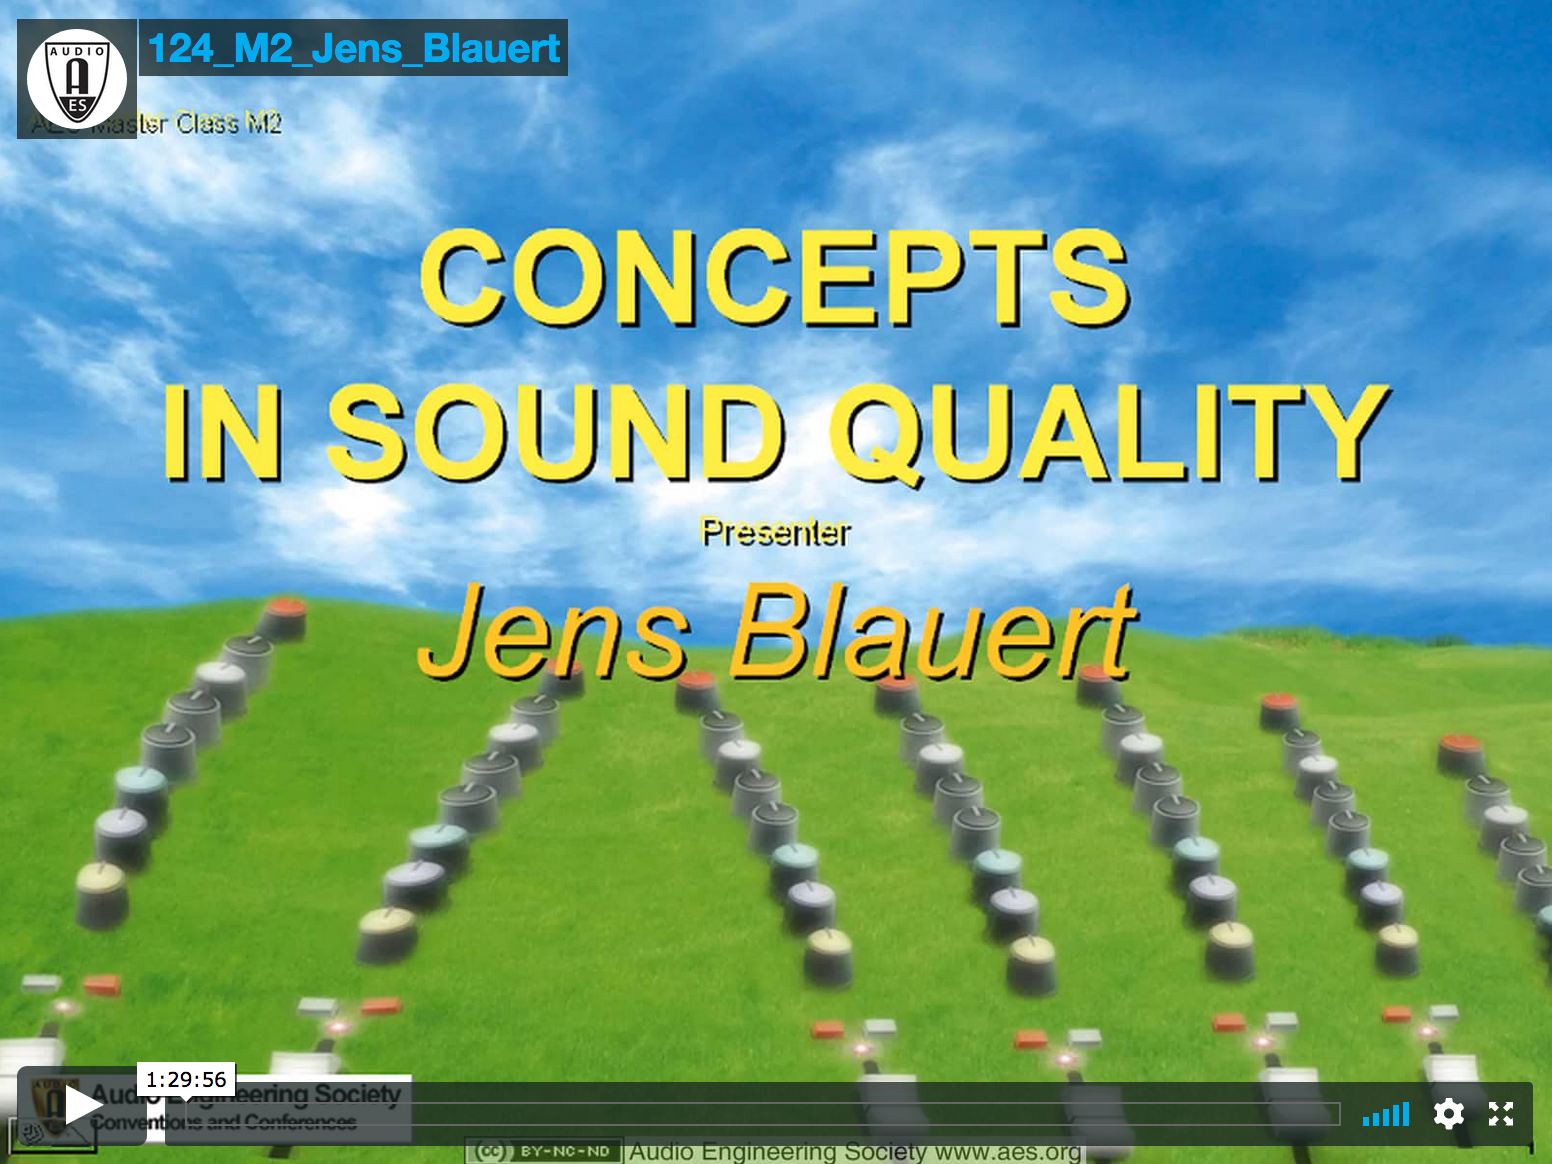 Jens Blauert: Concepts In Sound Quality